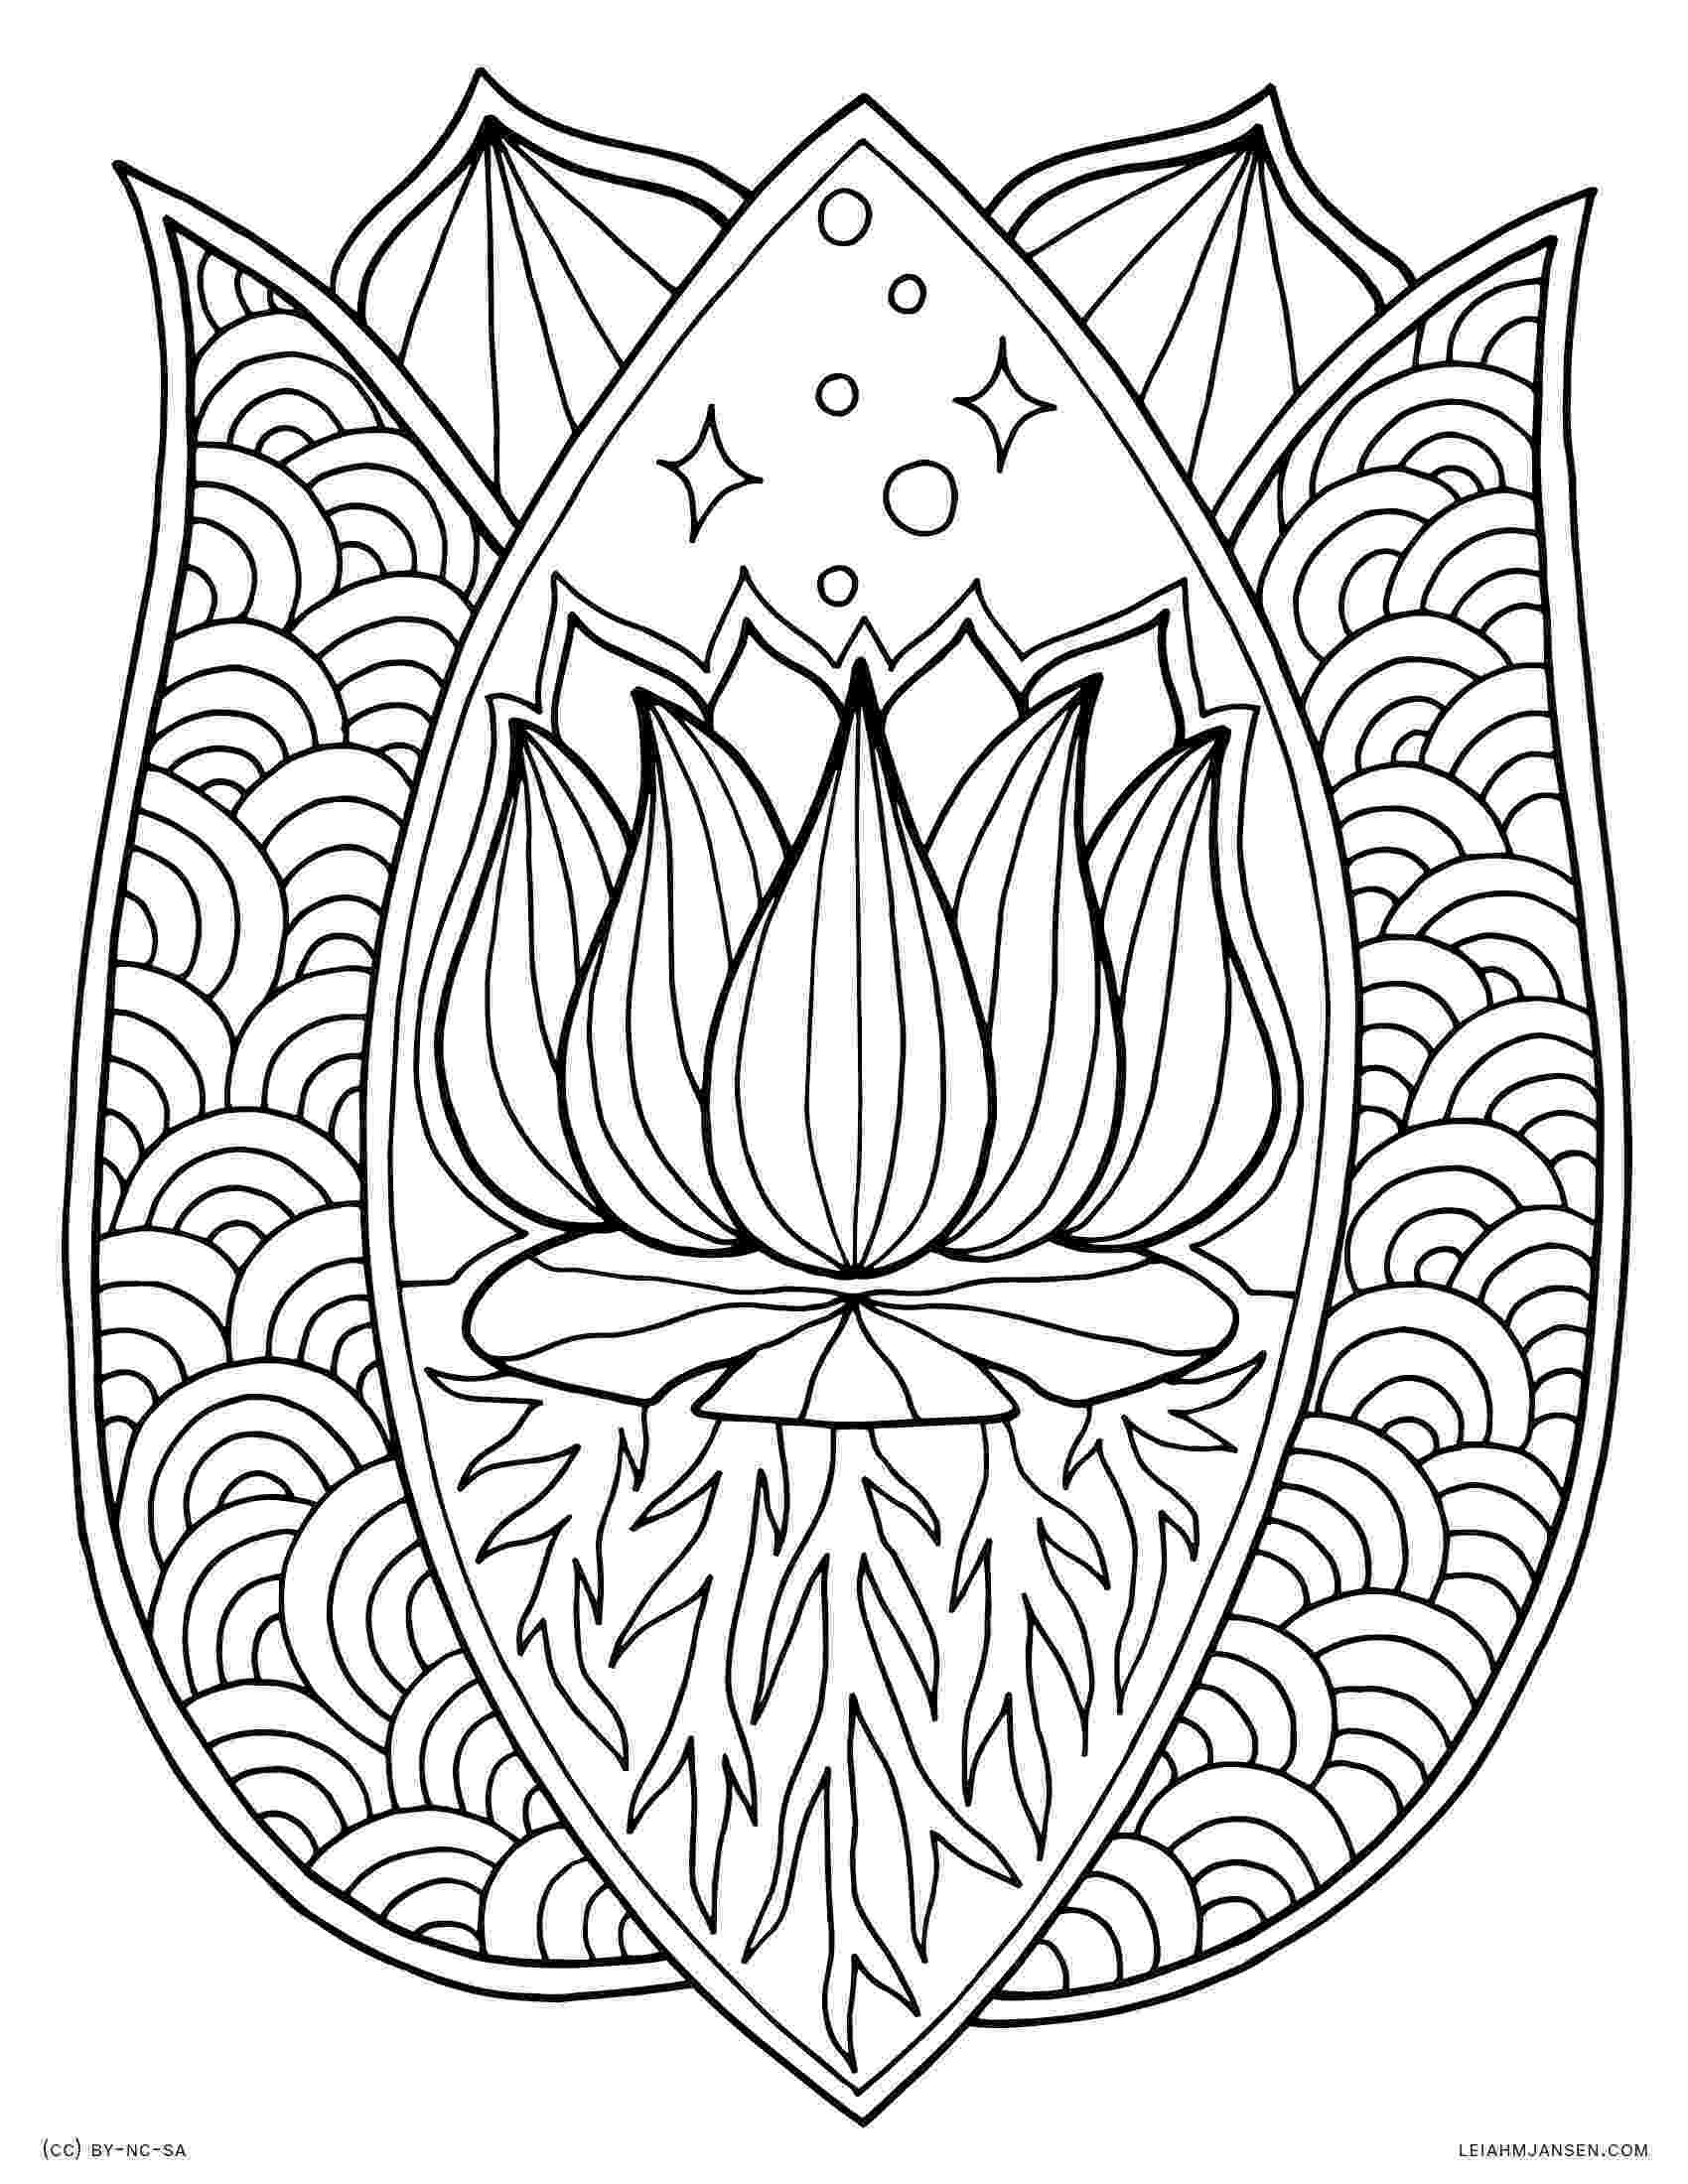 free printable flower coloring pages for adults coloring pages printable pages adults for coloring free flower